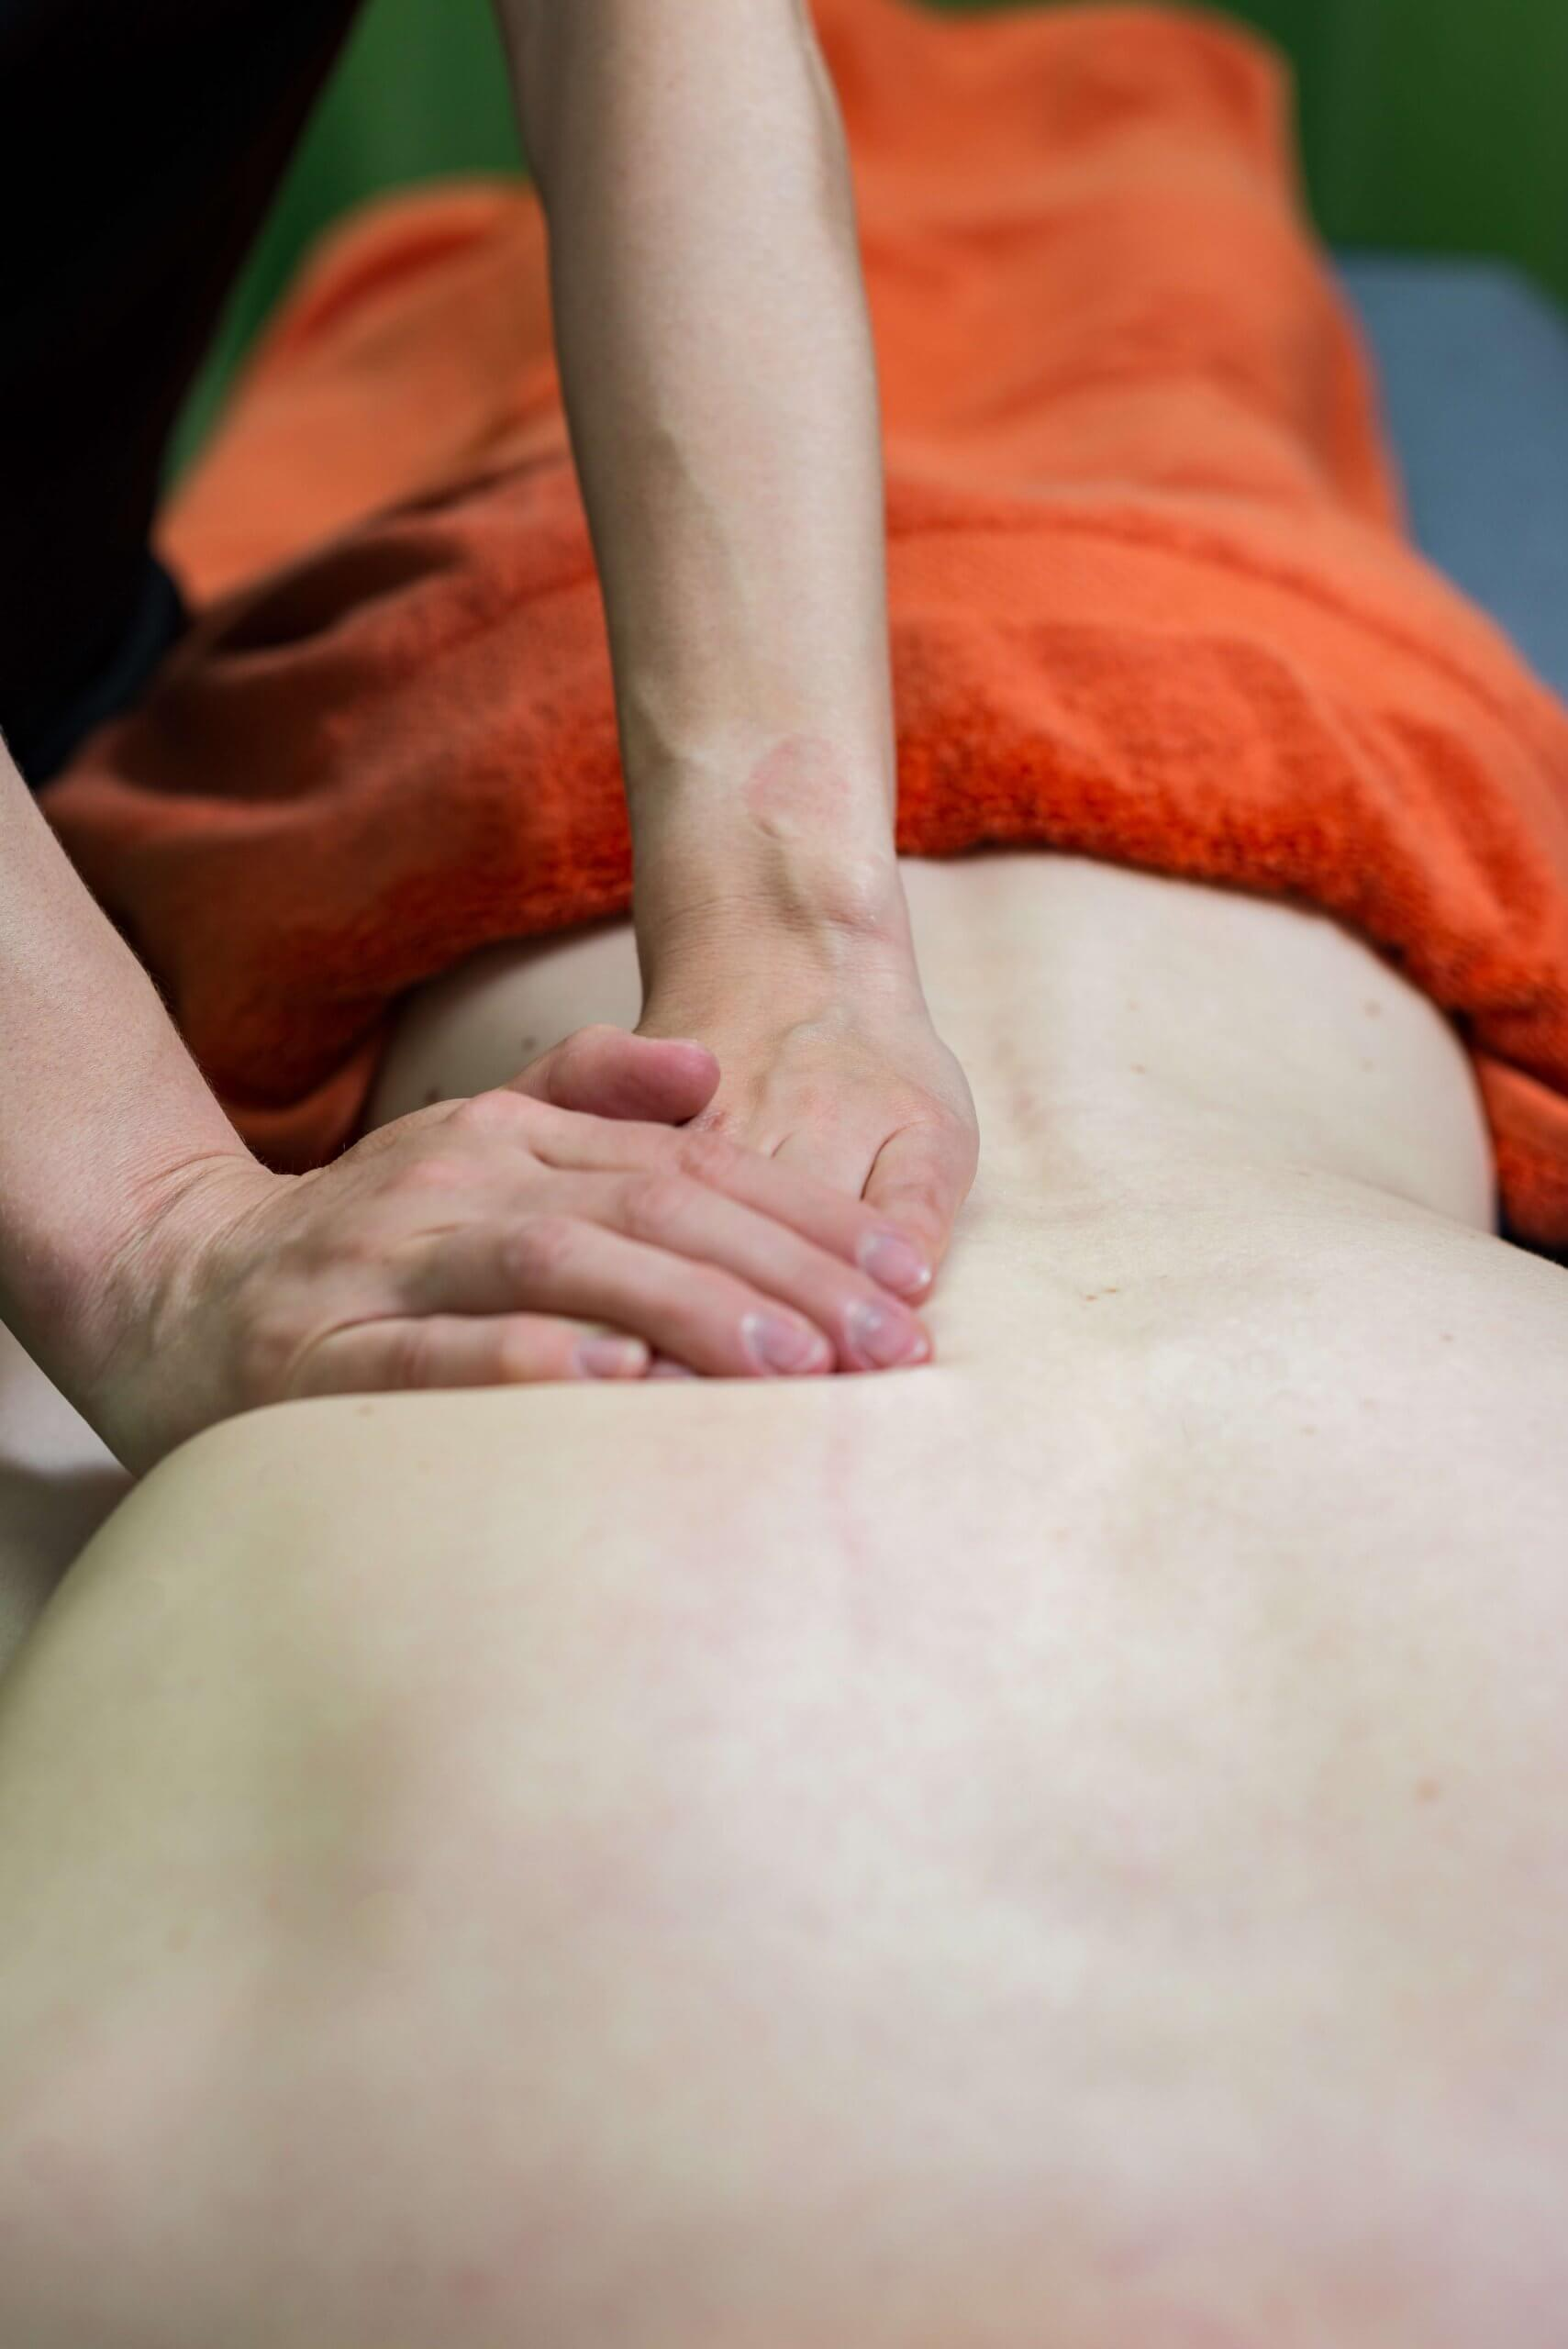 Sydney-Remedial-Massage-Massage-Therapy-Physiotherapy-Sydney-Massage-Therapy-Sports-Massage-Sydney